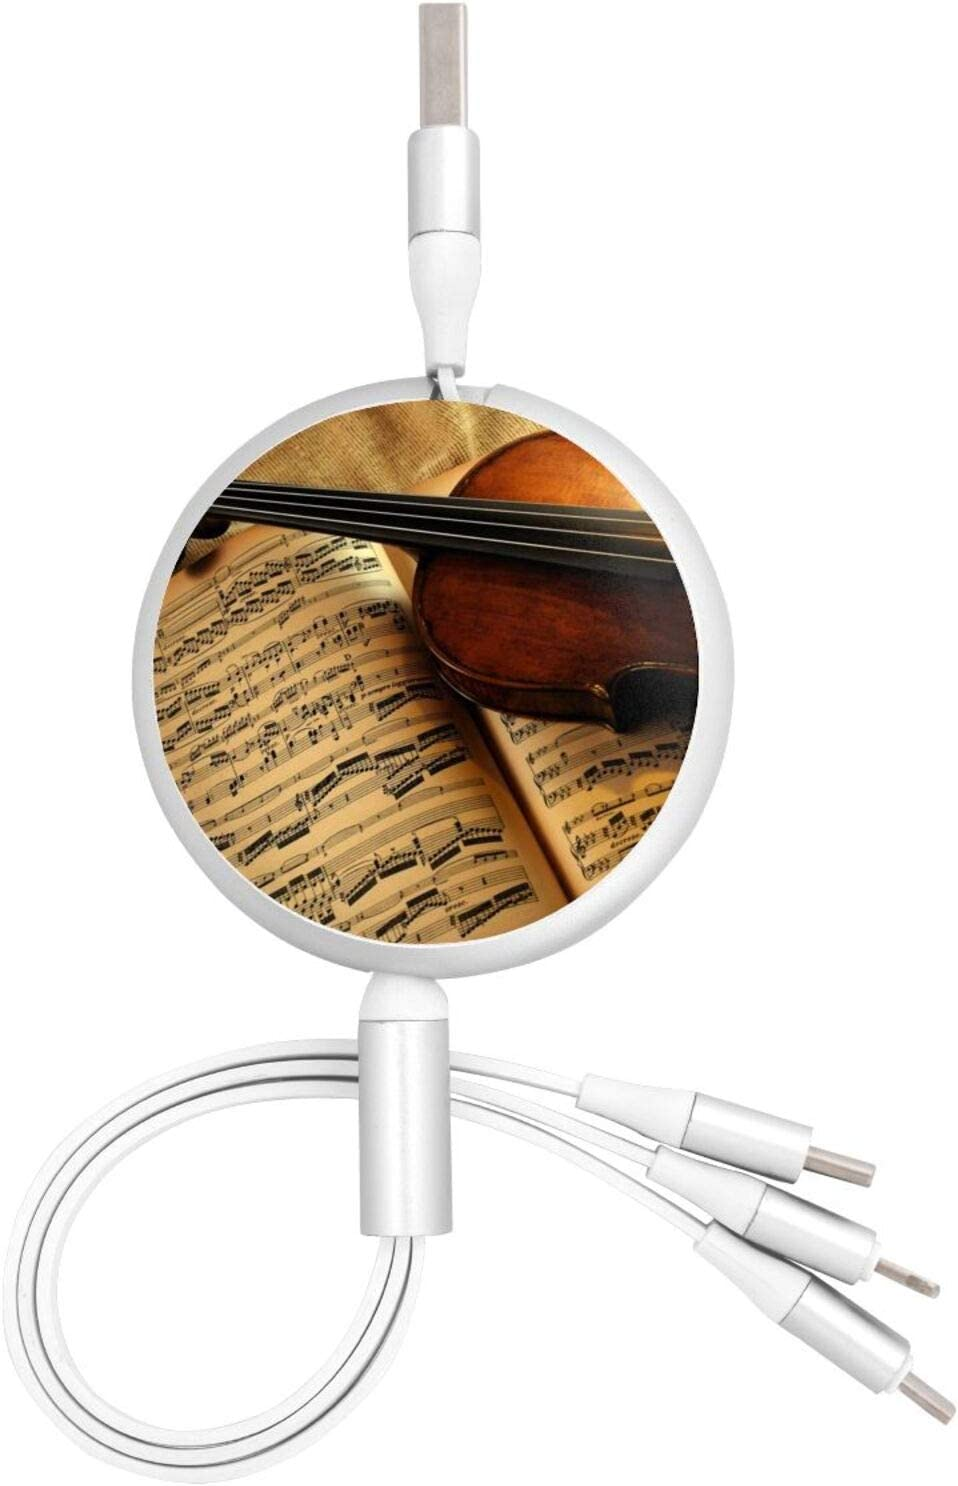 3 in 1 Retractable USB Charger Cable Cord Violin Score Fast Charging Customized USB Charge Cord Compatible with Cell Phones Tablets Universal Use